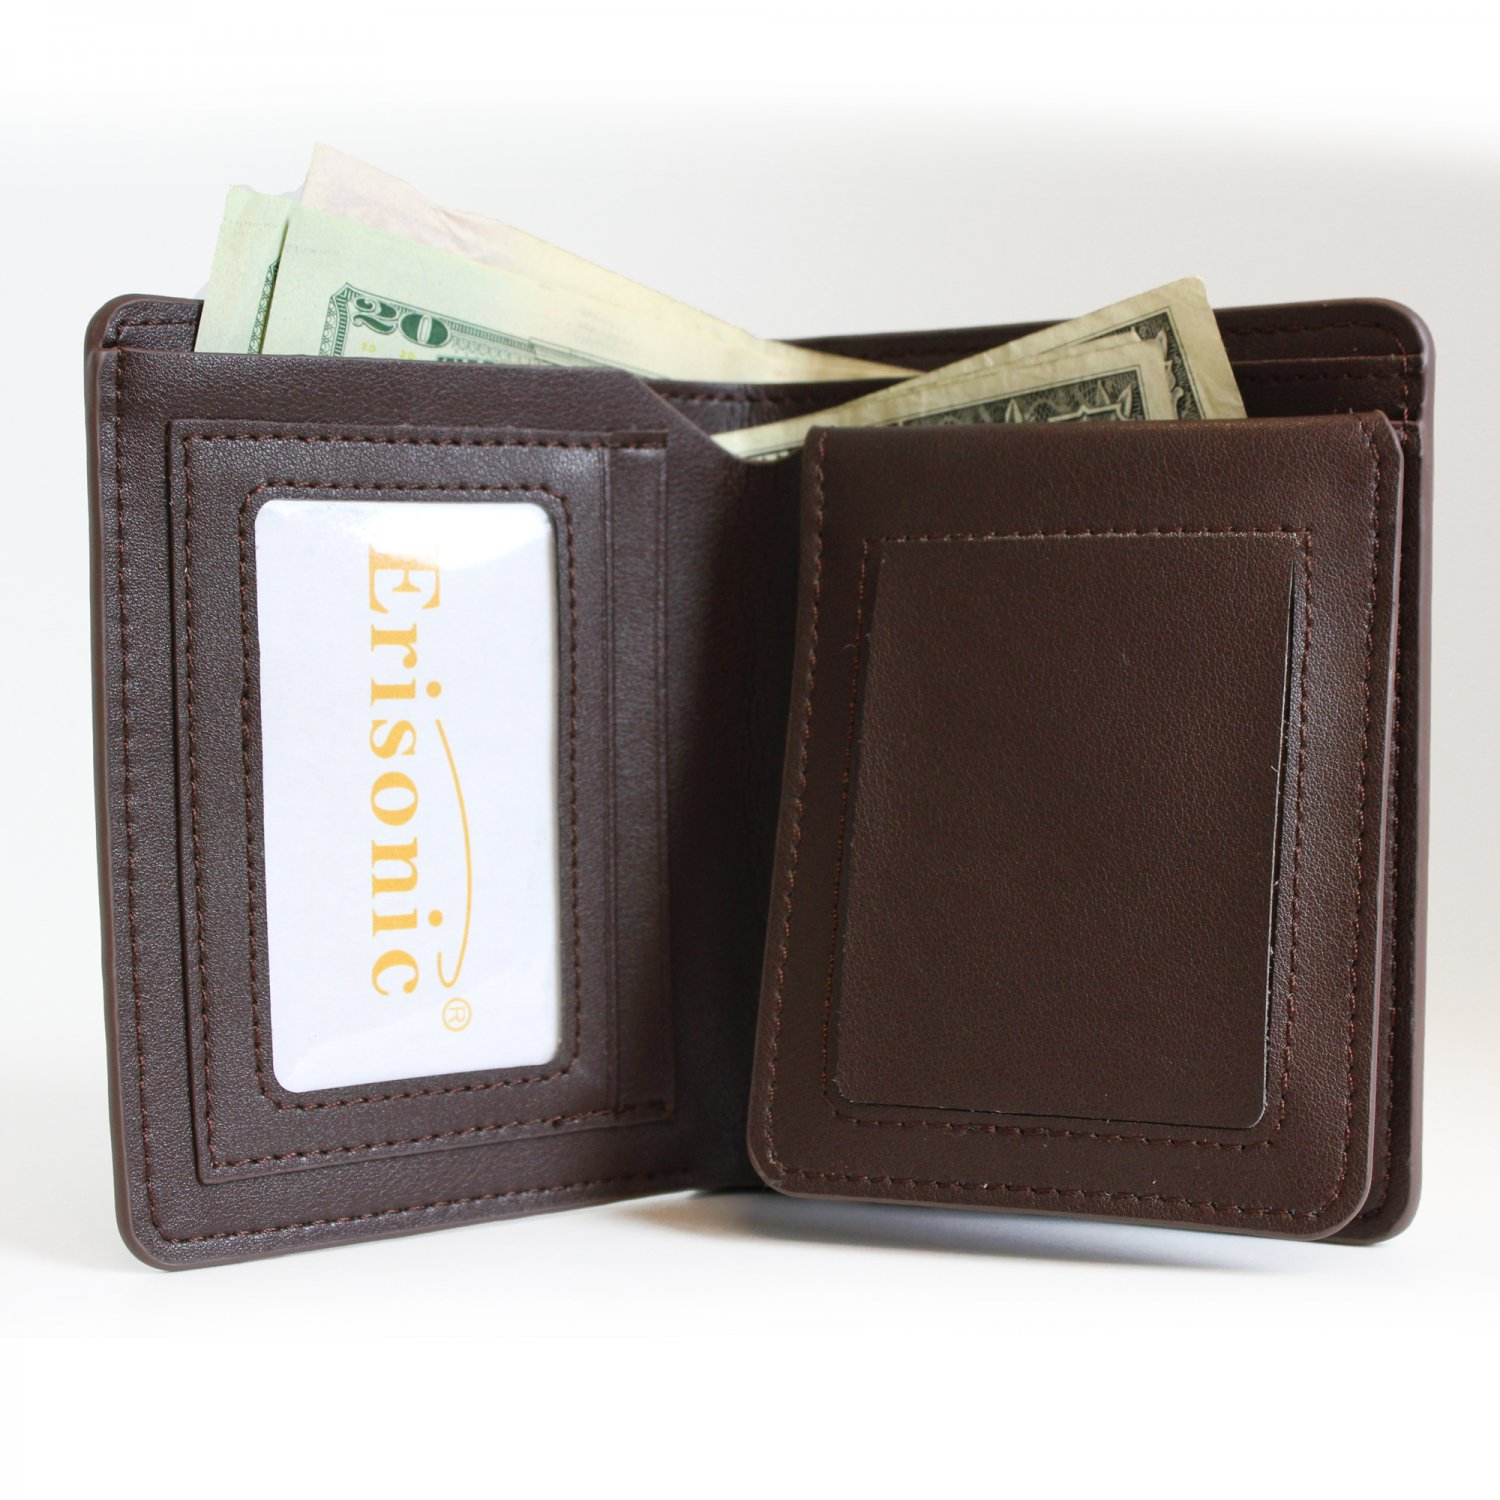 Erisonic Leather Smart Wallet Bluetooth Safe Wallet with app for men Never Loss your wallet